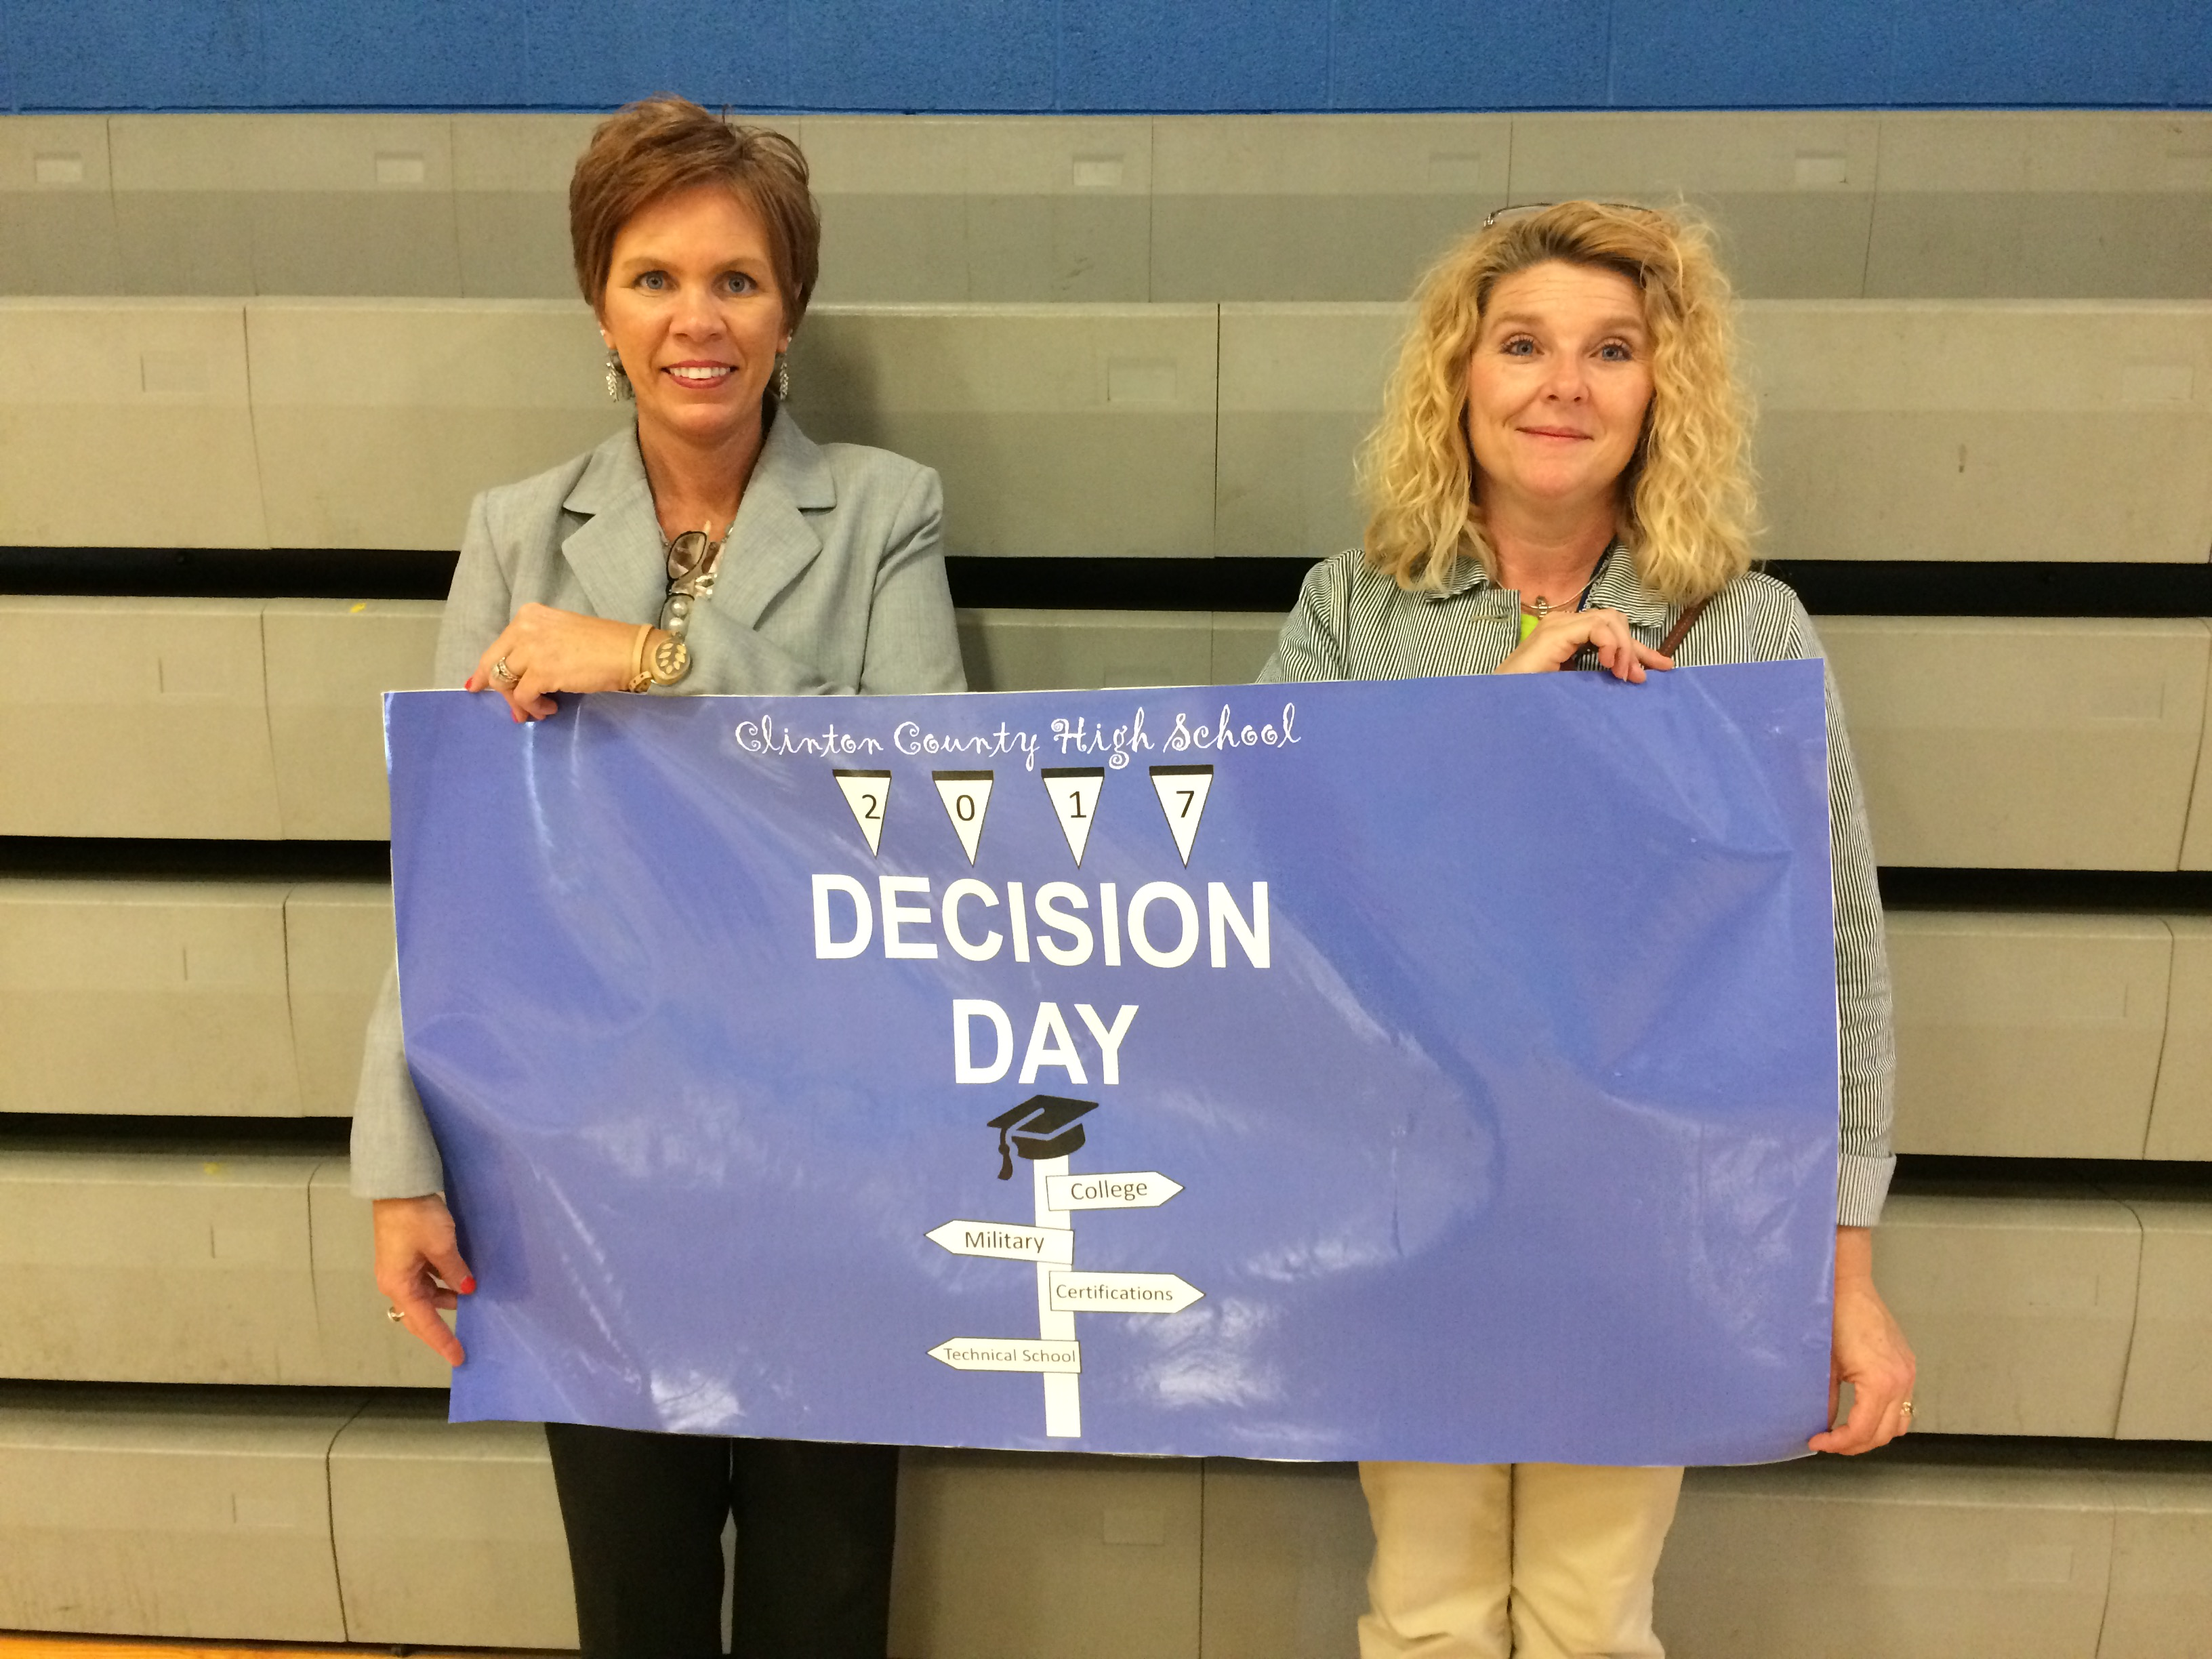 On Tuesday, May 9th, Clinton County High School honored 99 seniors who have committed to post-secondary education in the first ever Decision Day at CCHS.